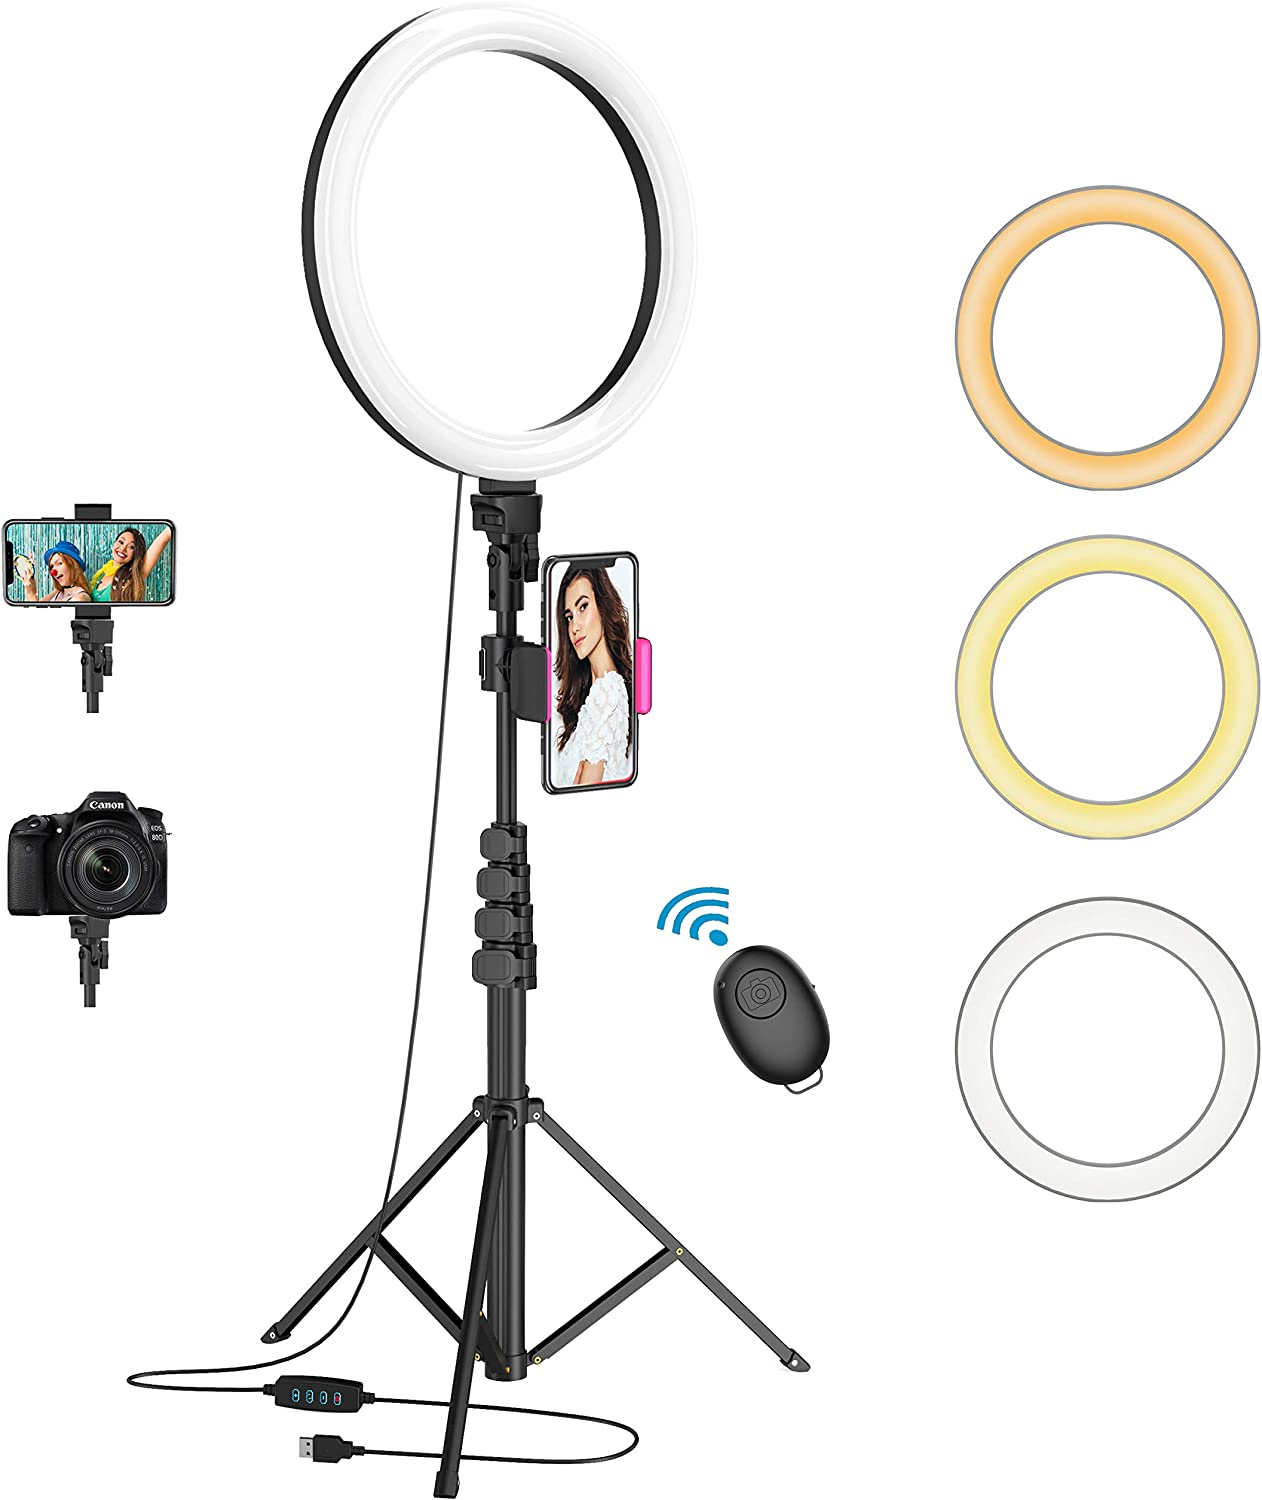 """Waulnpekq 12"""" Selfie Ring Light with 62"""" Adjustable Tripod Stand and Phone Holder $19.99 Coupon"""